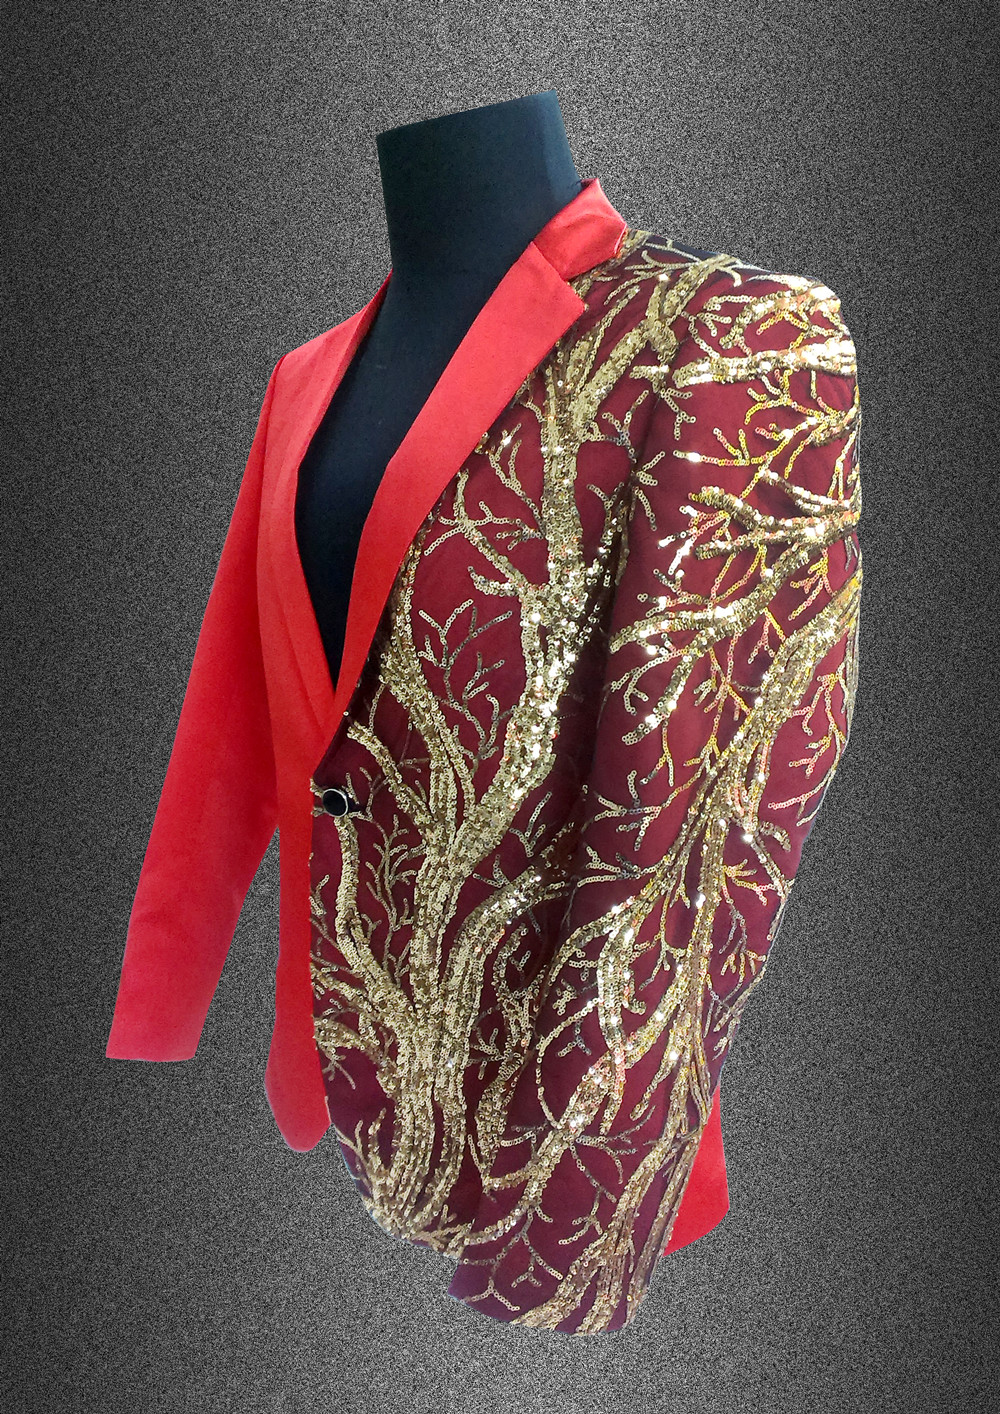 singer blazer Male formal dress costume men's clothing paillette suits clothes for dancer star performance nightclub party bar 5